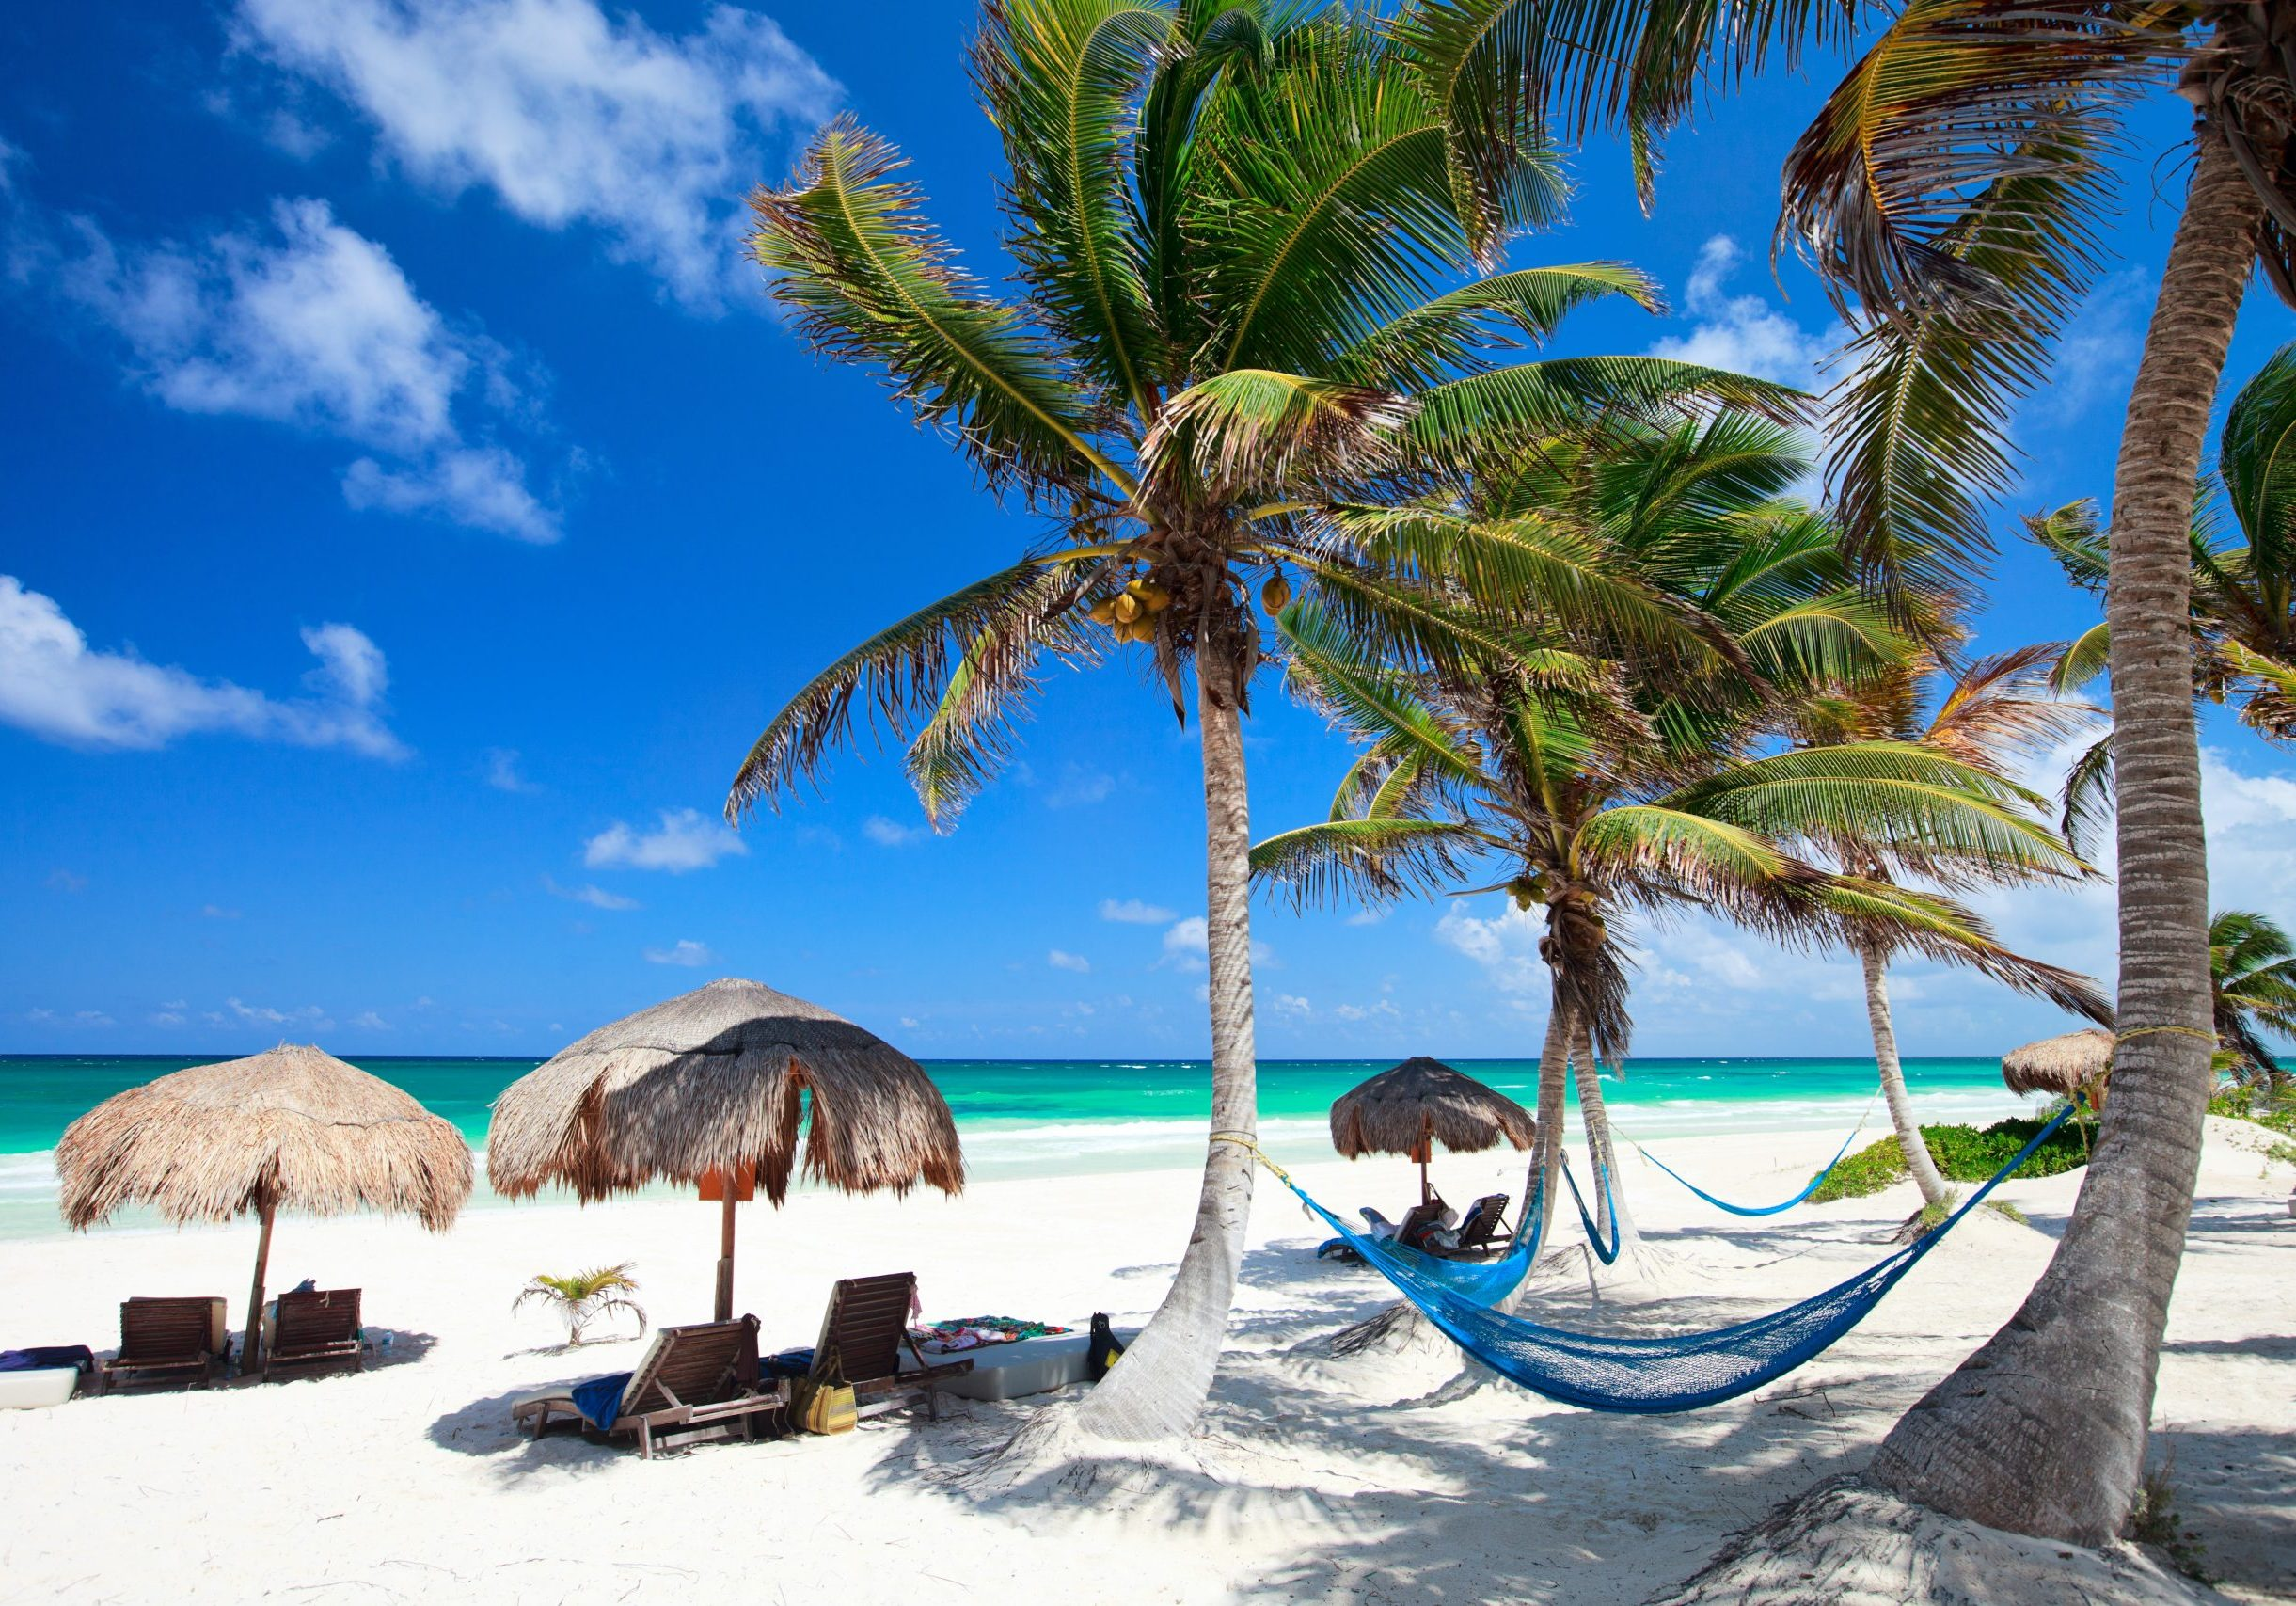 beachfront image with palm trees and hammock